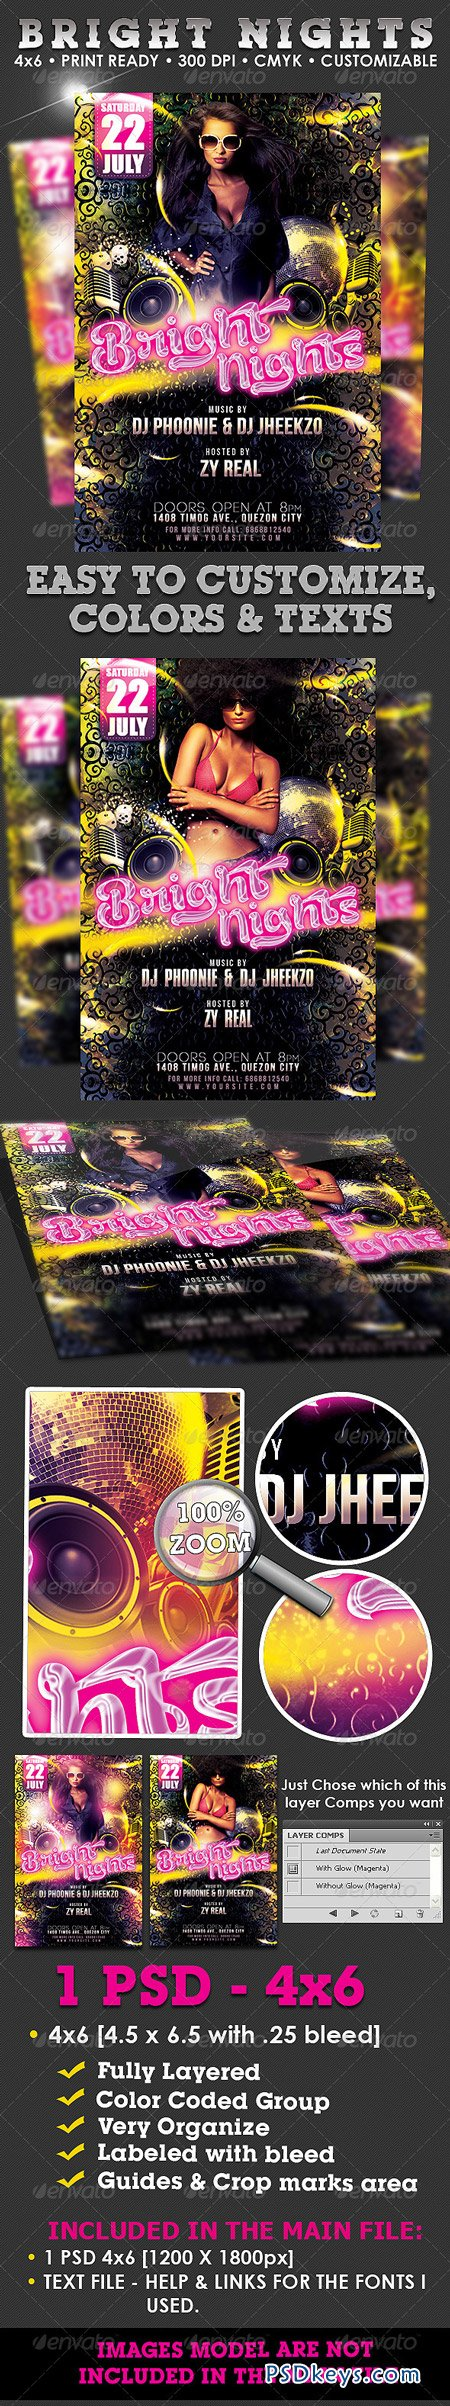 Bright Nights Flyer Template 1935401